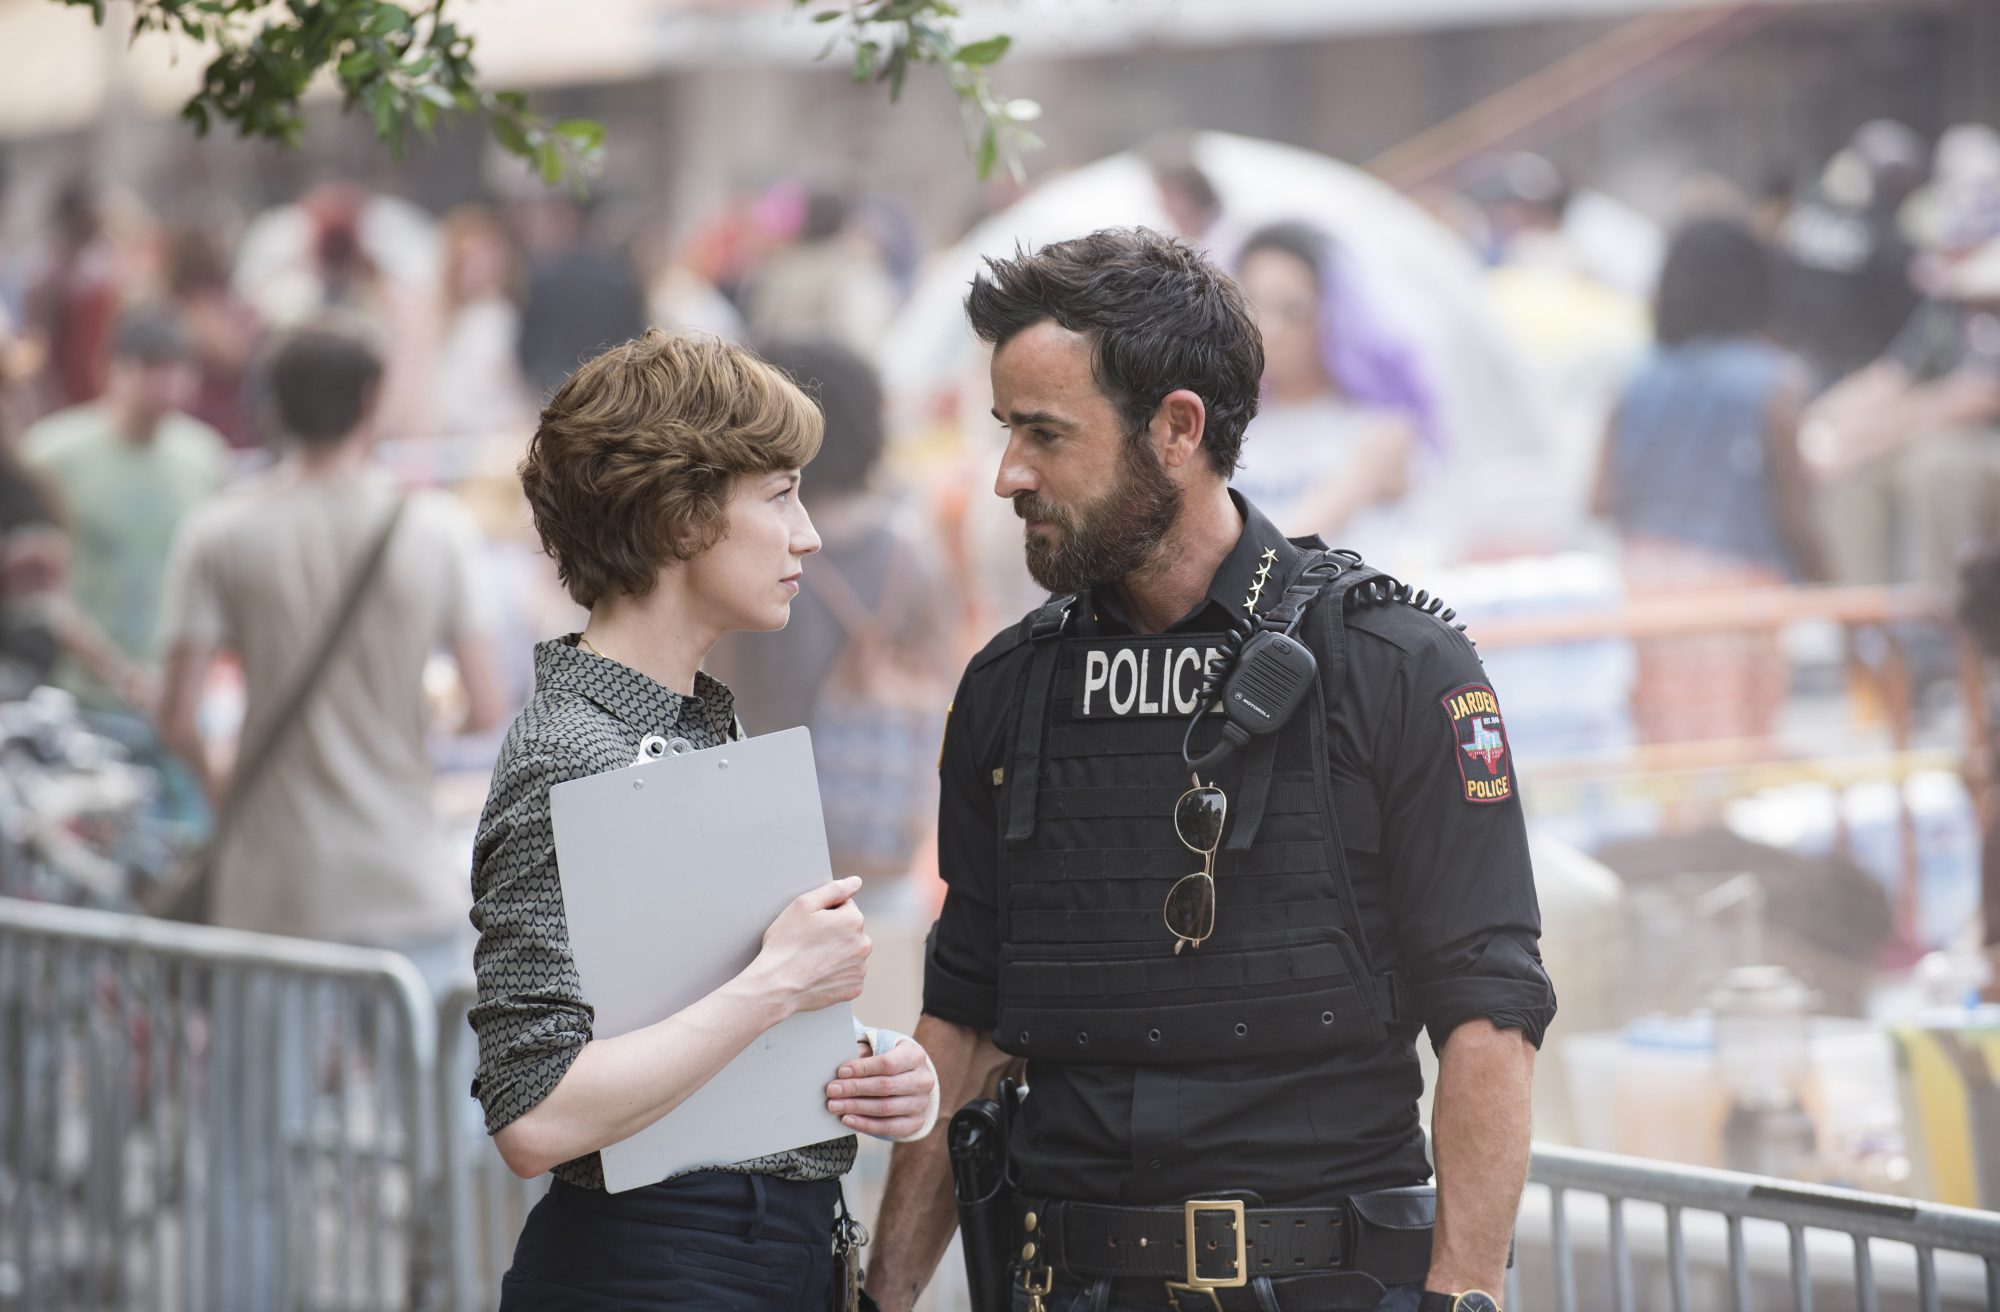 theleftovers 1 e1492180458276 Top 25 TV Shows of 2017